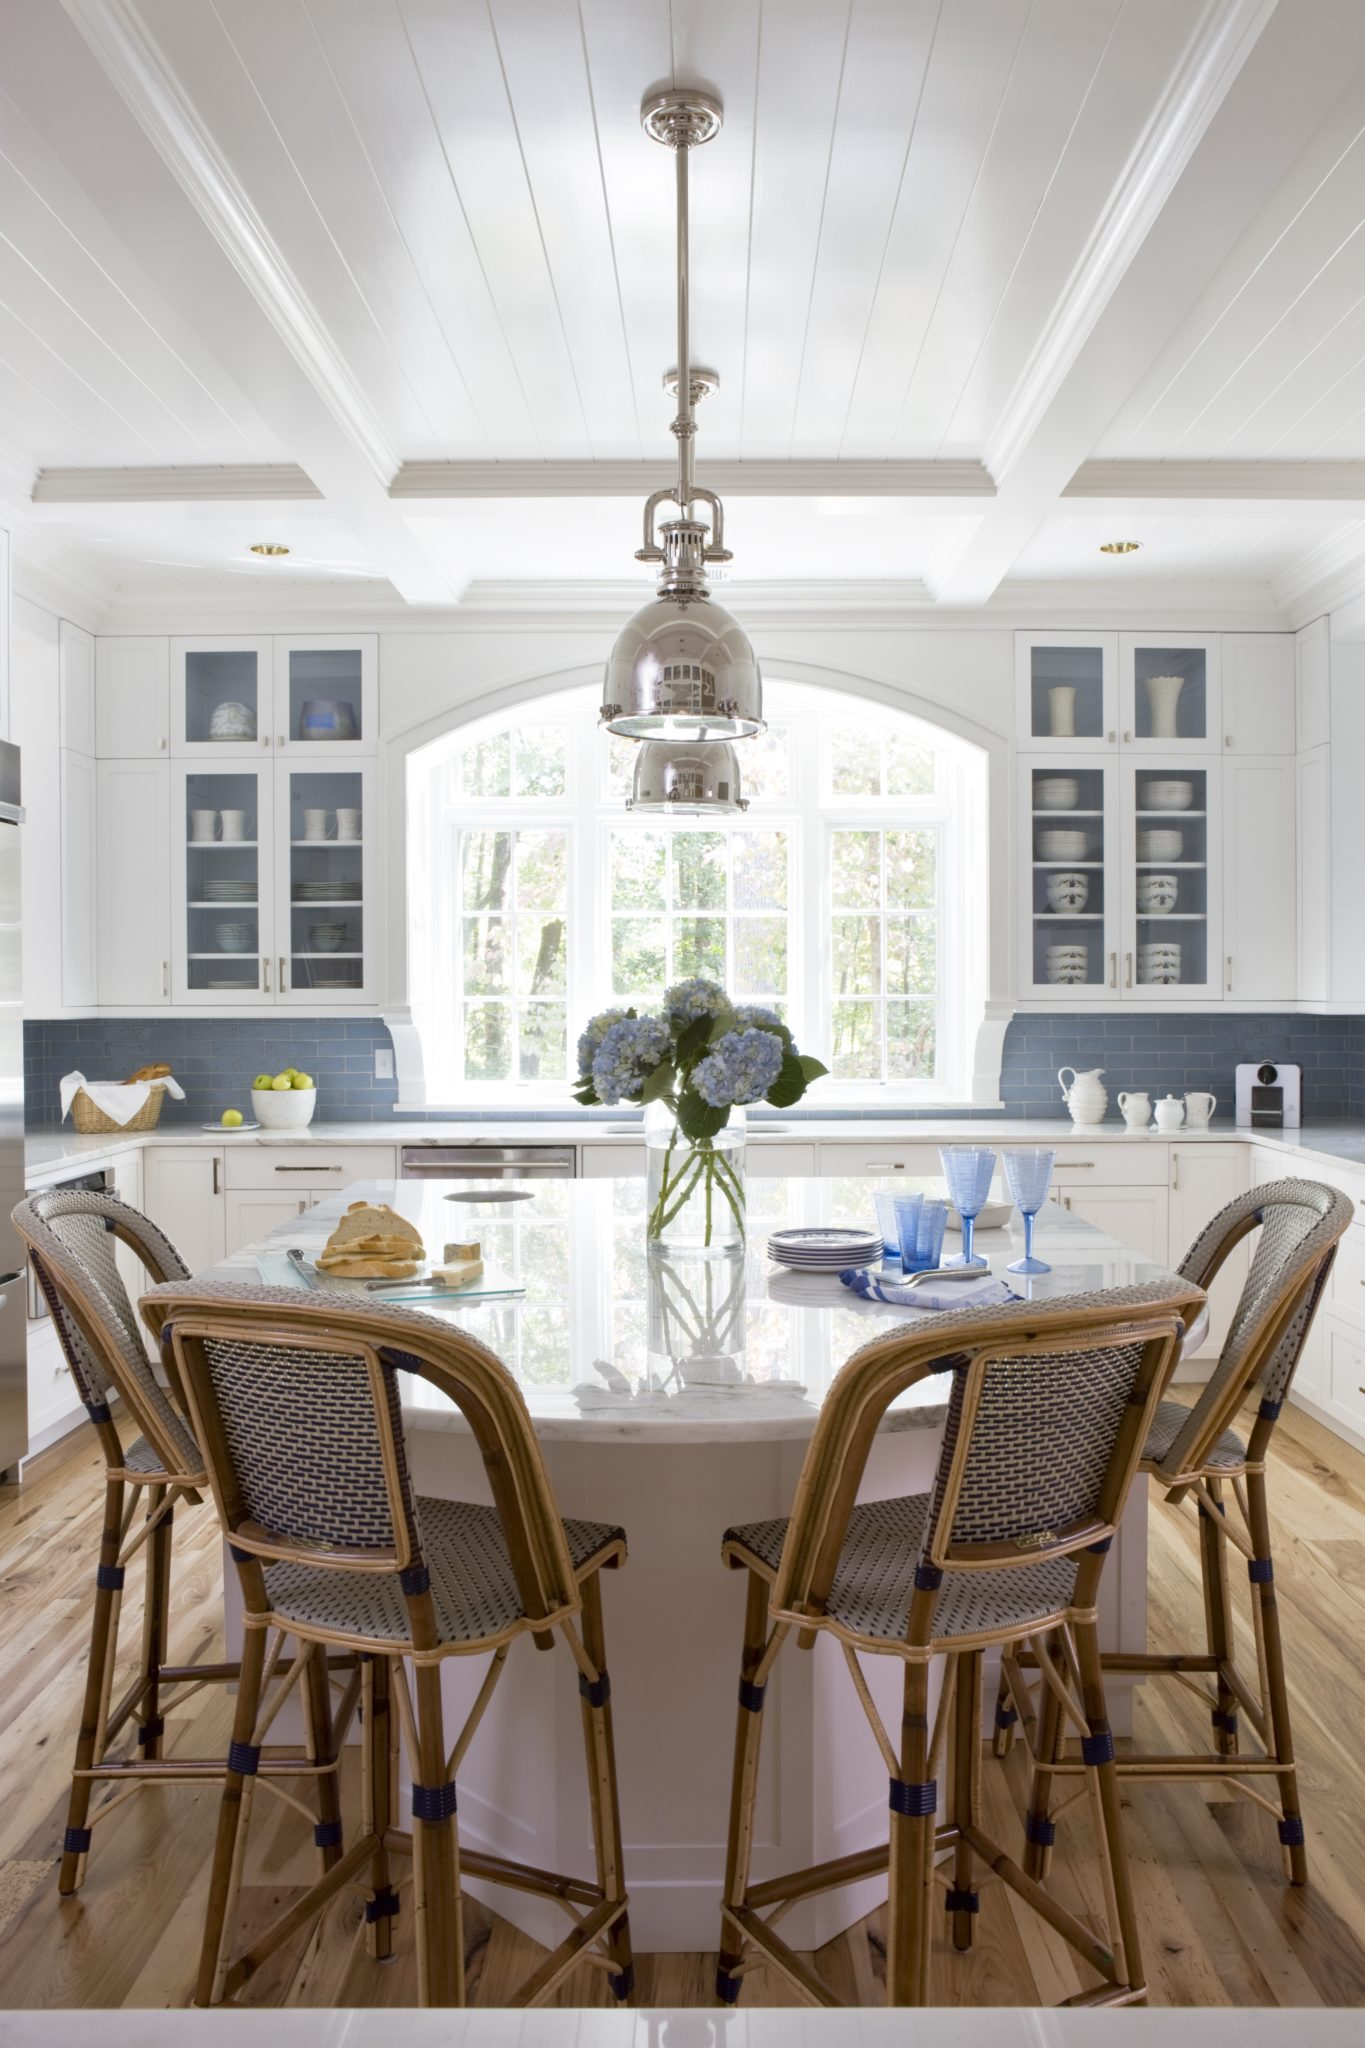 A chic kitchen by Celia Welch Interiors